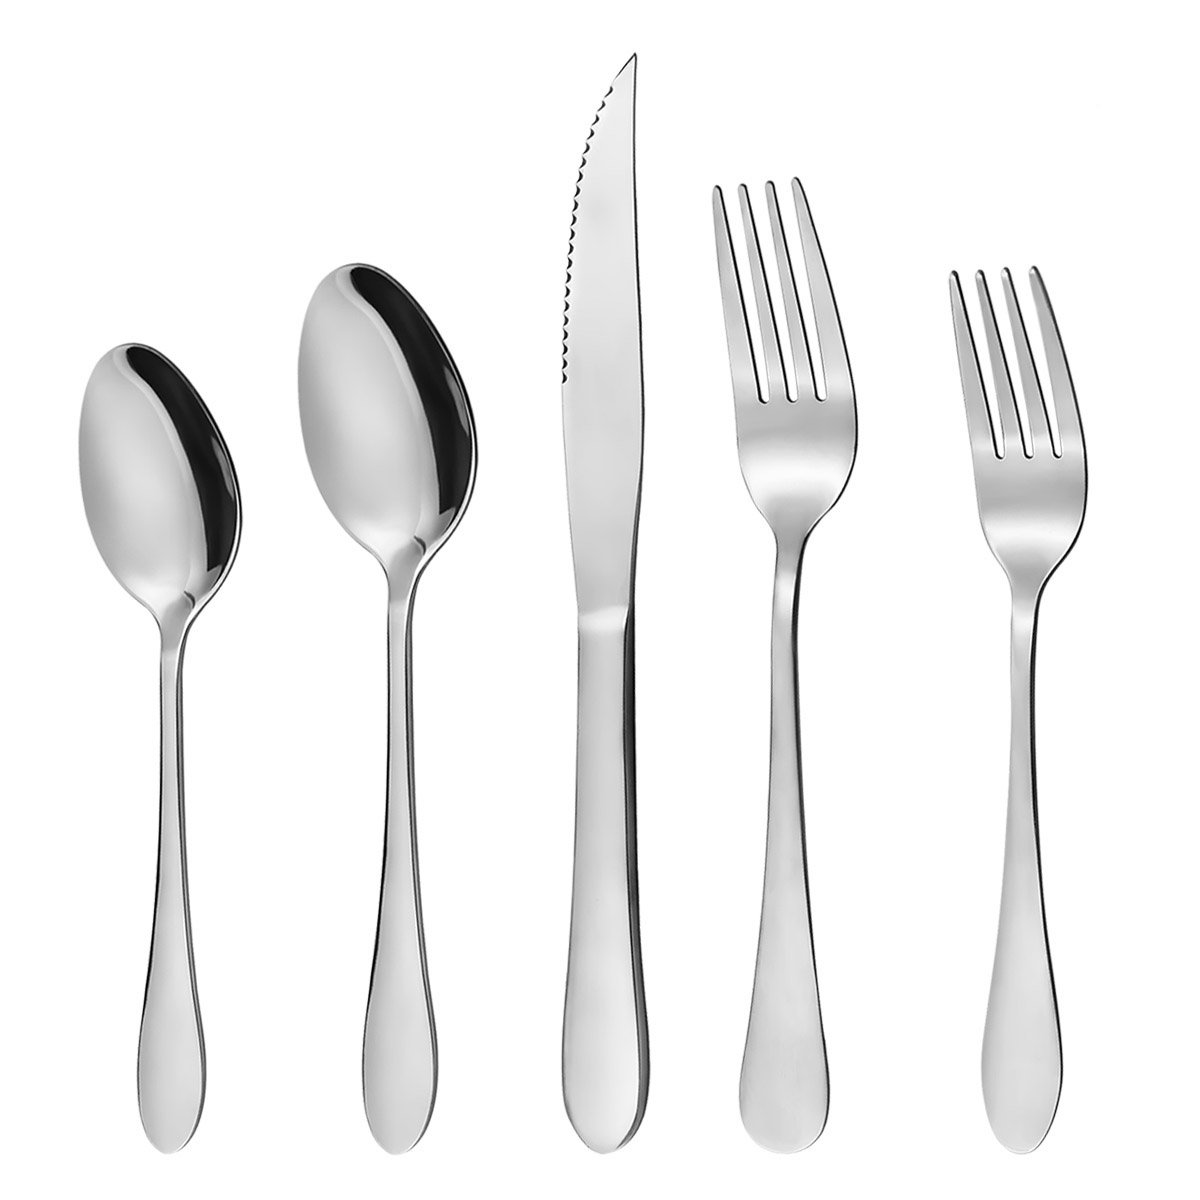 20-Piece Stainless Steel Silverware Flatware Set Cutlery Utensils Set for Kitchen Hotel Restaurant Wedding Party Mirror Polished Knife Fork Spoon Dishwasher Safe Anti-Scald Multipurpose Use Yoobure